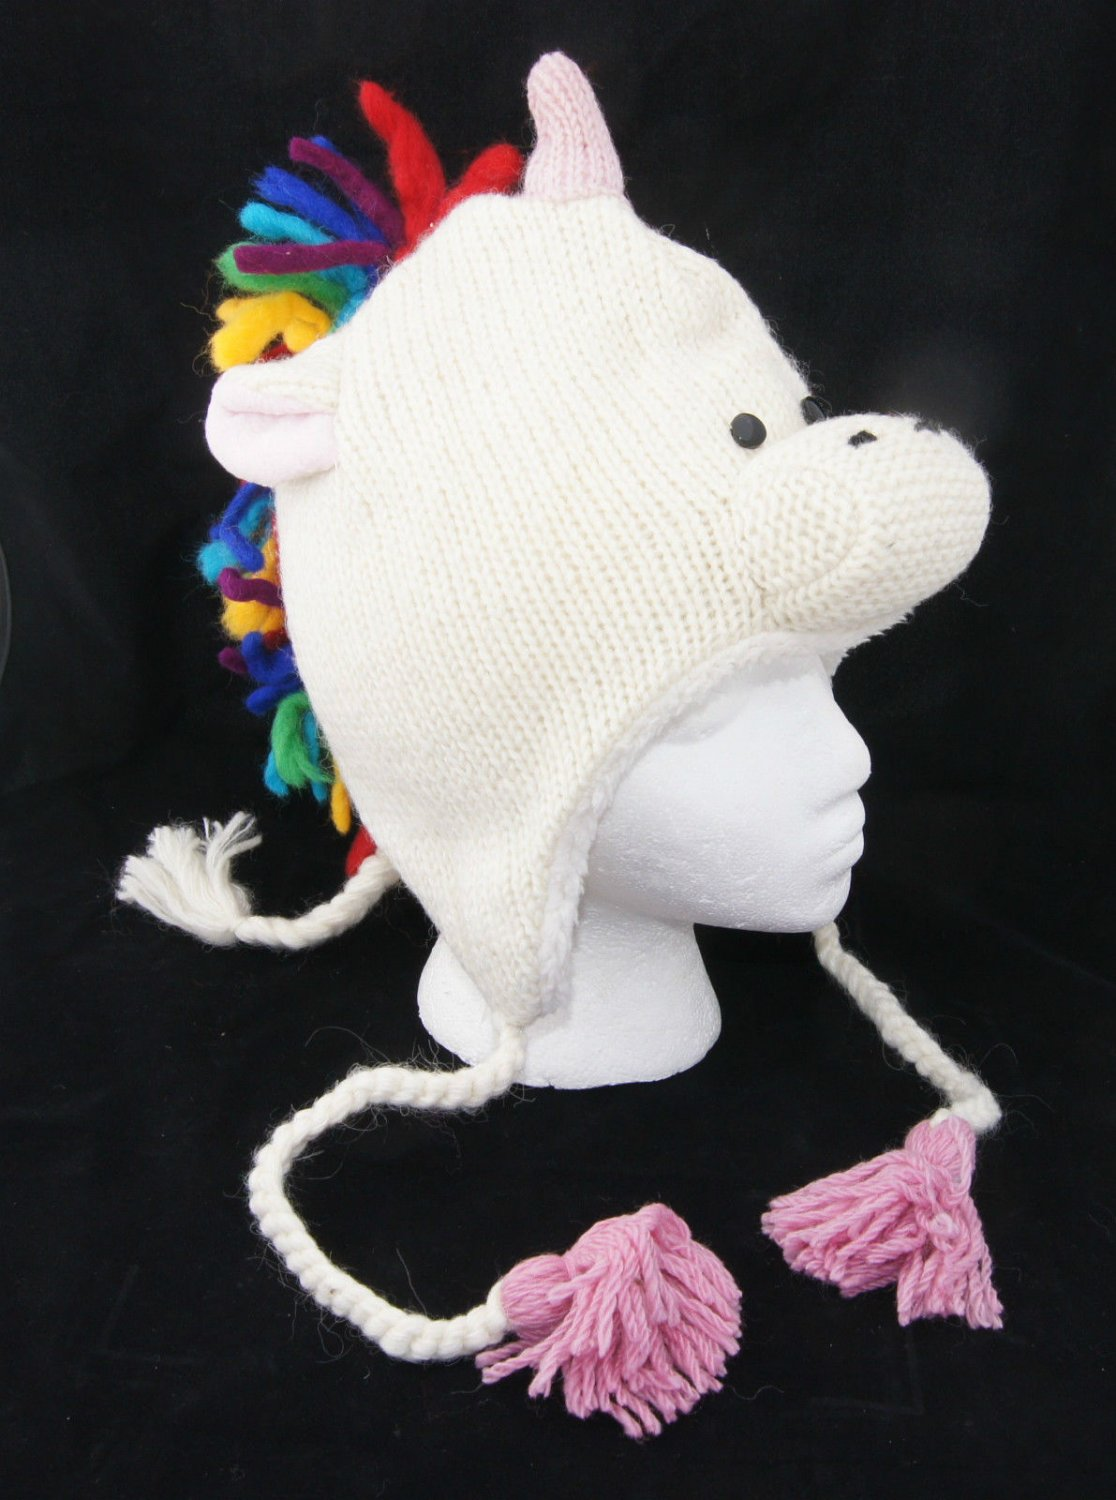 Rainbow Unicorn Knitting Pattern : Rainbow unicorn hat adult knit fleece lined white horse